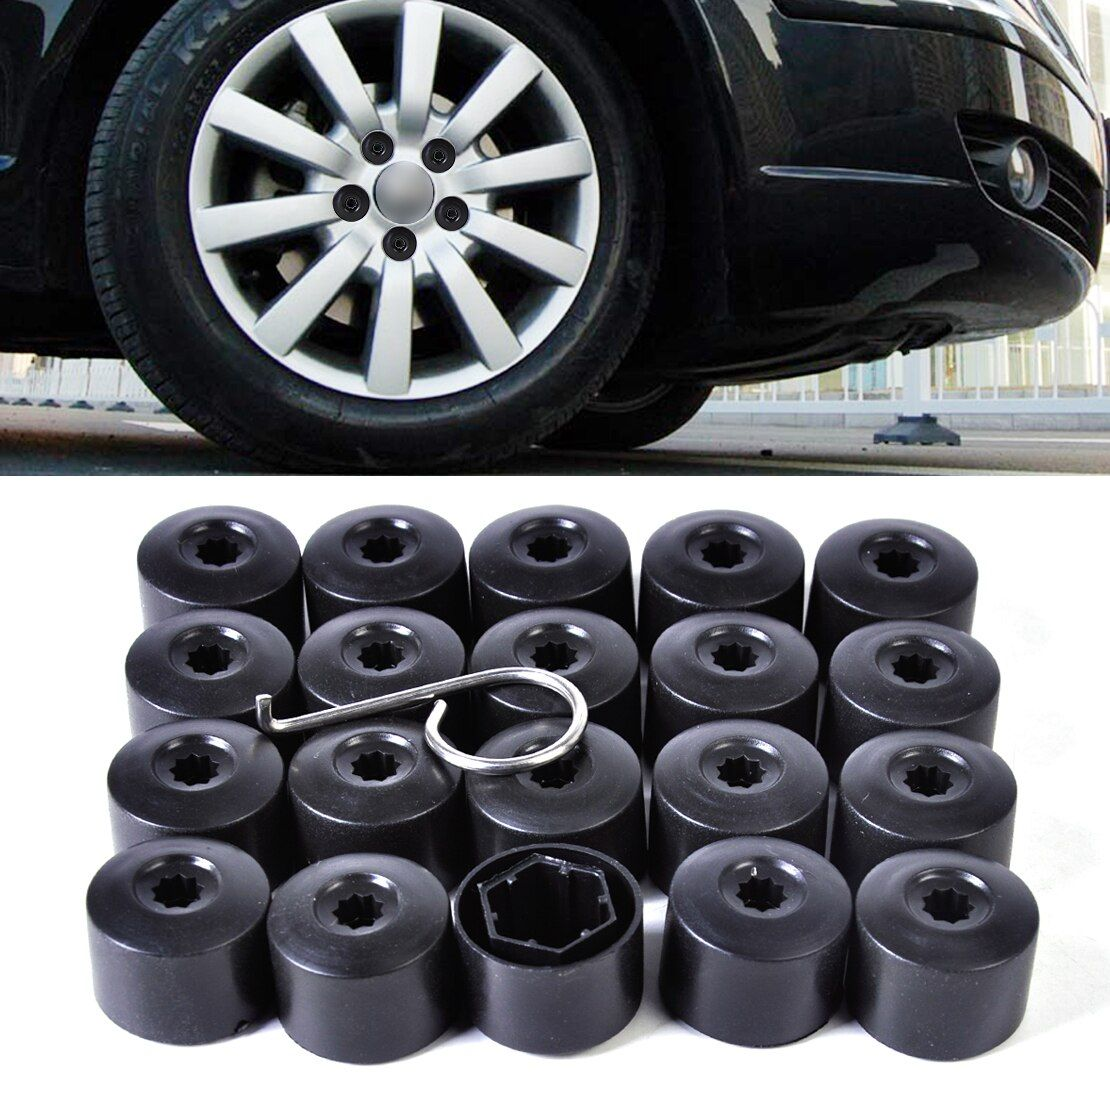 DWCX Anti-theft Wheel Lug Bolt Center Nut Covers Caps 1K0601173, 3C0601173 for VW Jetta Golf MK5 Passat B6 POLO Fox-EU Pheaton